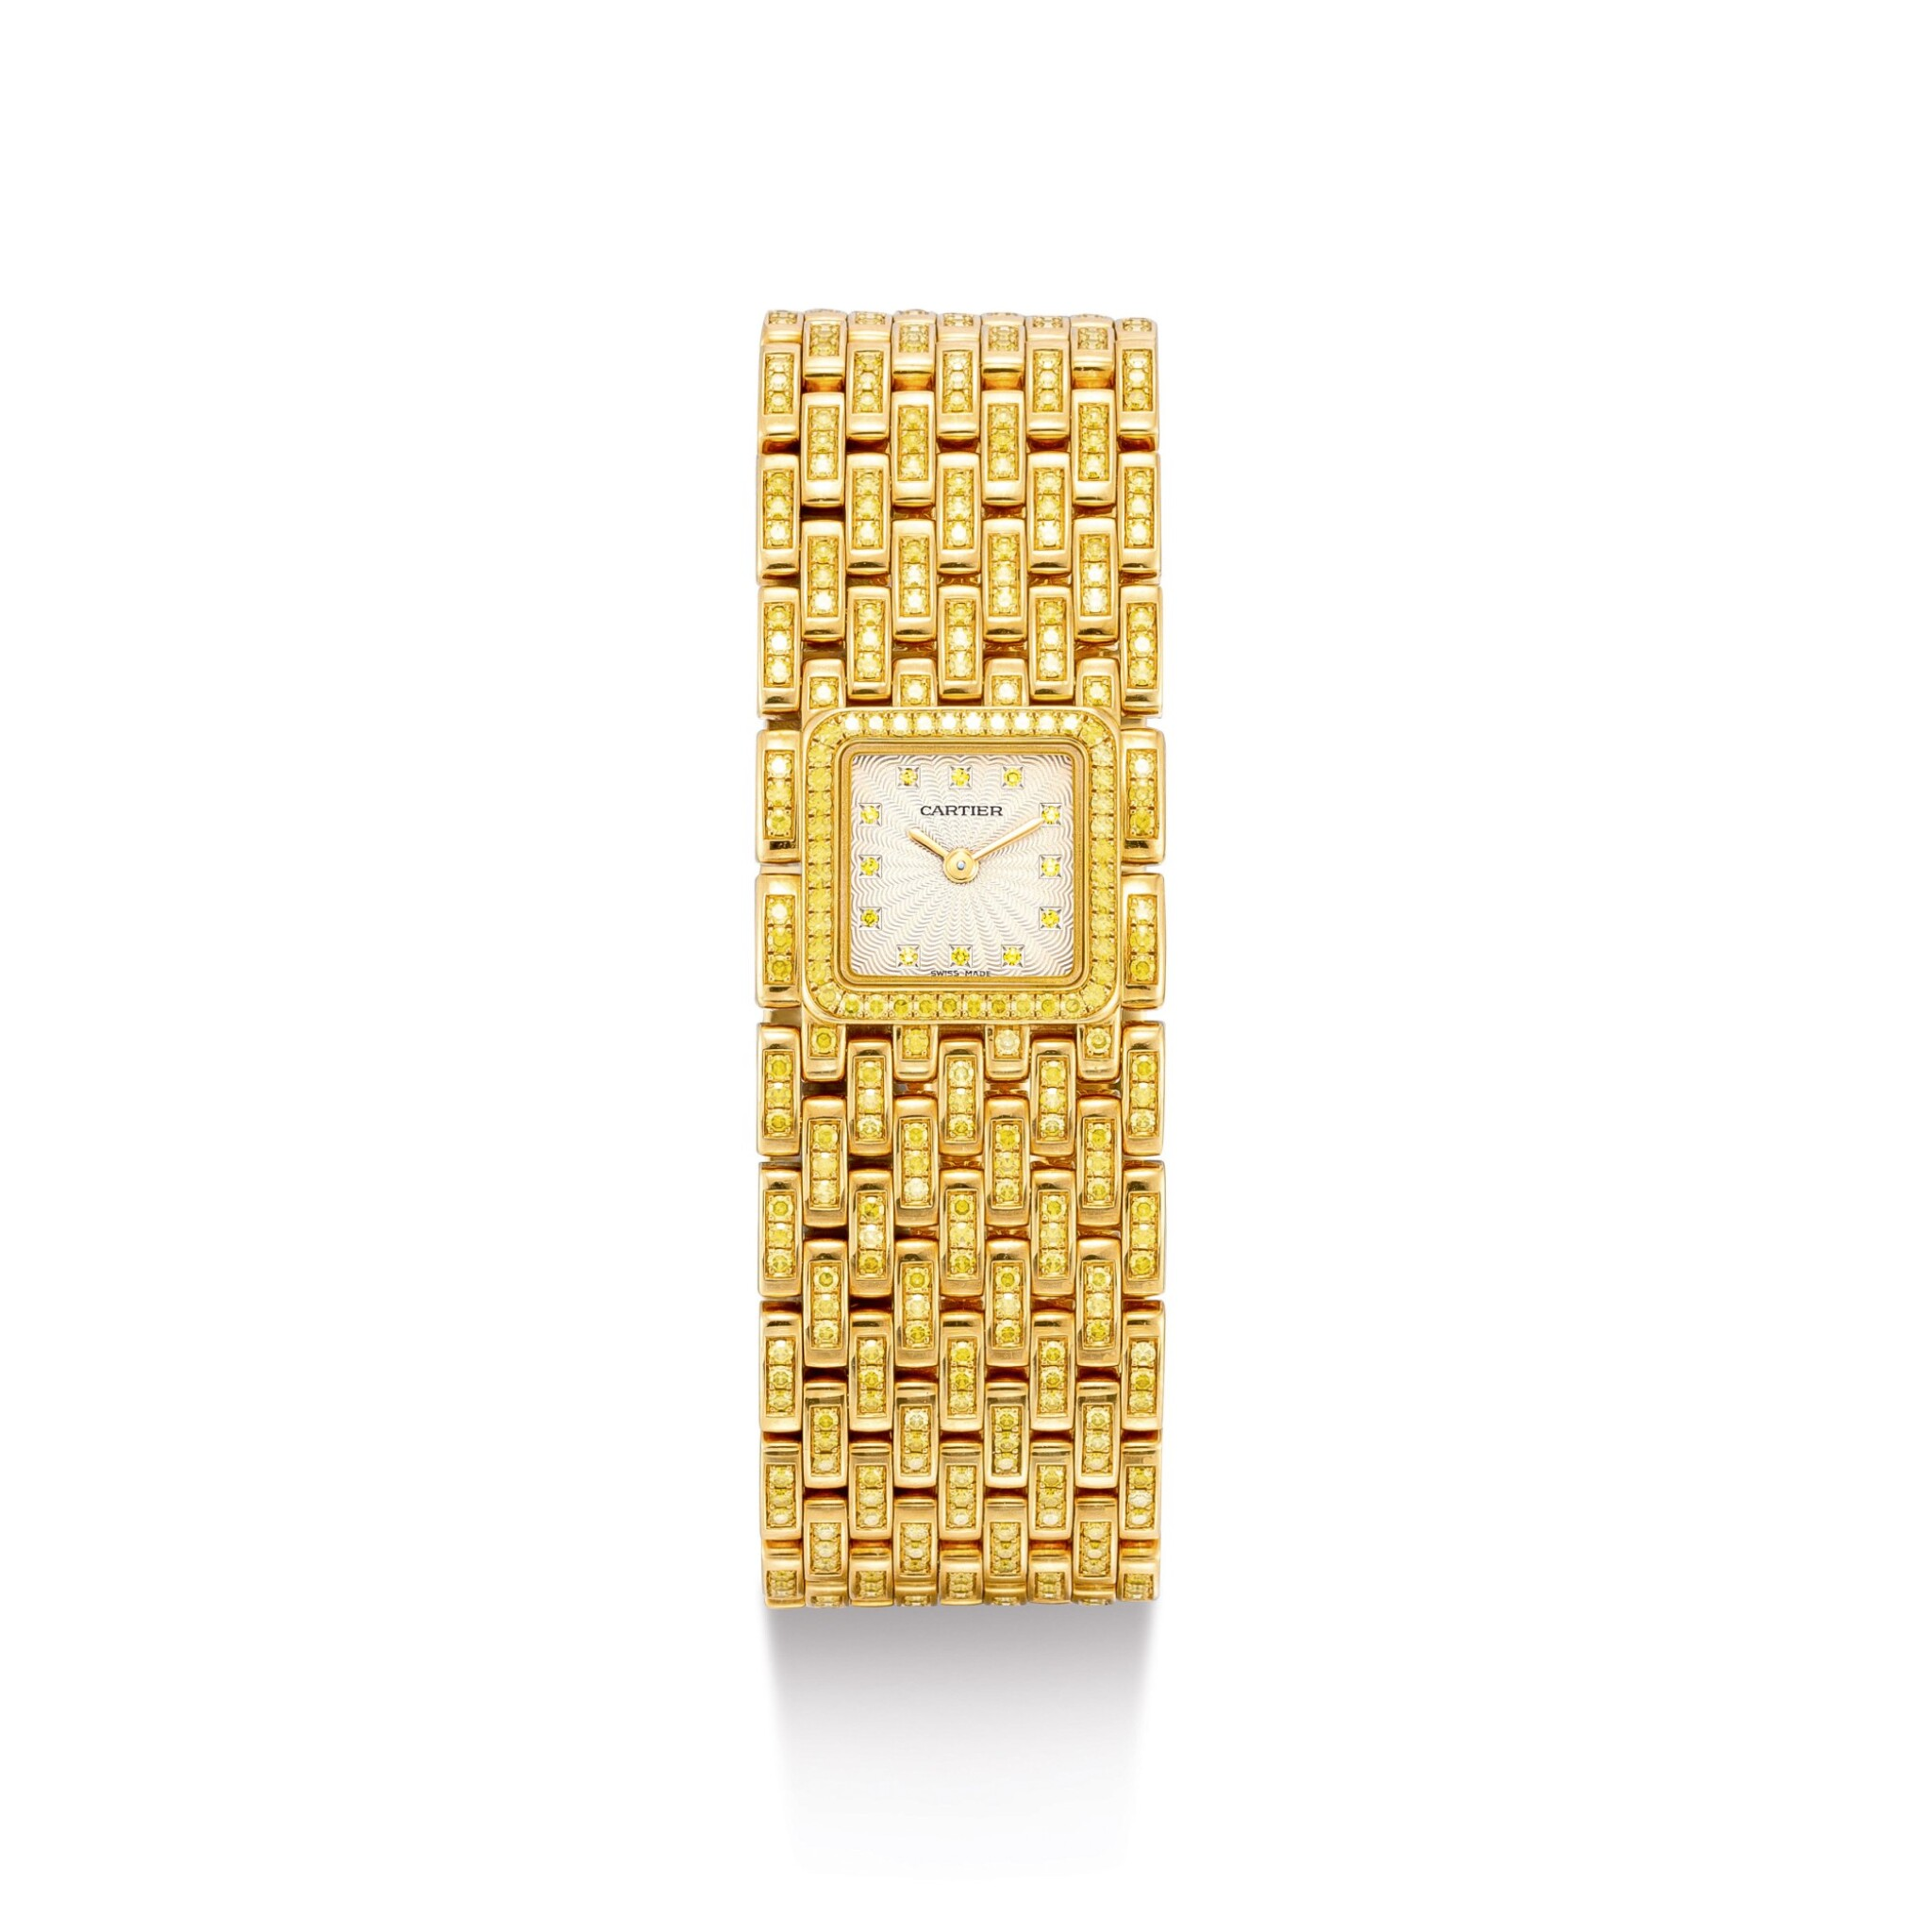 """View full screen - View 1 of Lot 2053. CARTIER   PANTHÉRE, REFERENCE 2449, A UNIQUE YELLOW GOLD AND YELLOW DIAMOND-SET BRACELET WATCH, MADE ON SPECIAL REQUEST, CIRCA 2000   卡地亞   """"Panthére 型號2449 獨一無二黃金鑲黃鑽石鏈帶腕錶,為特殊訂製,錶殼編號99851CD,約2000年製""""."""